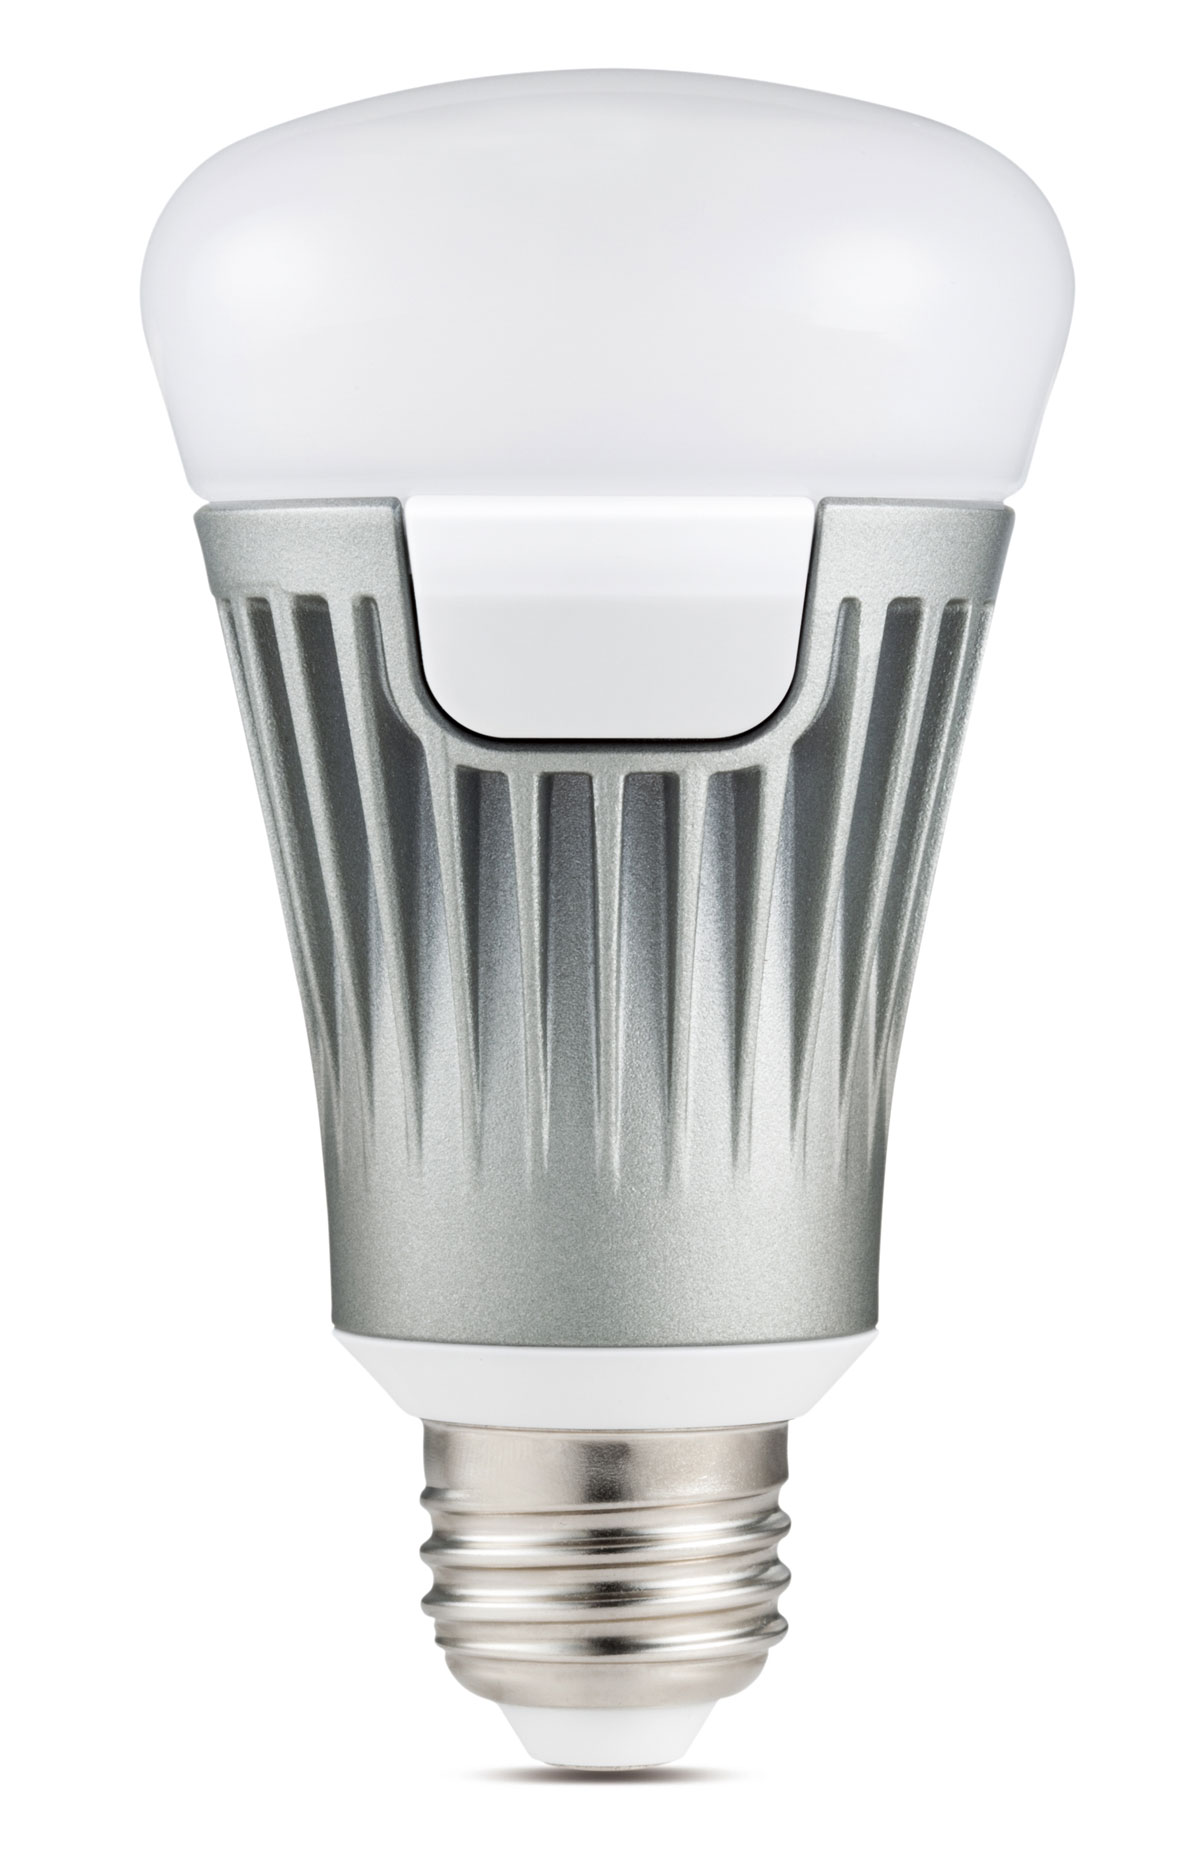 LG Electronics' Smart Lamp